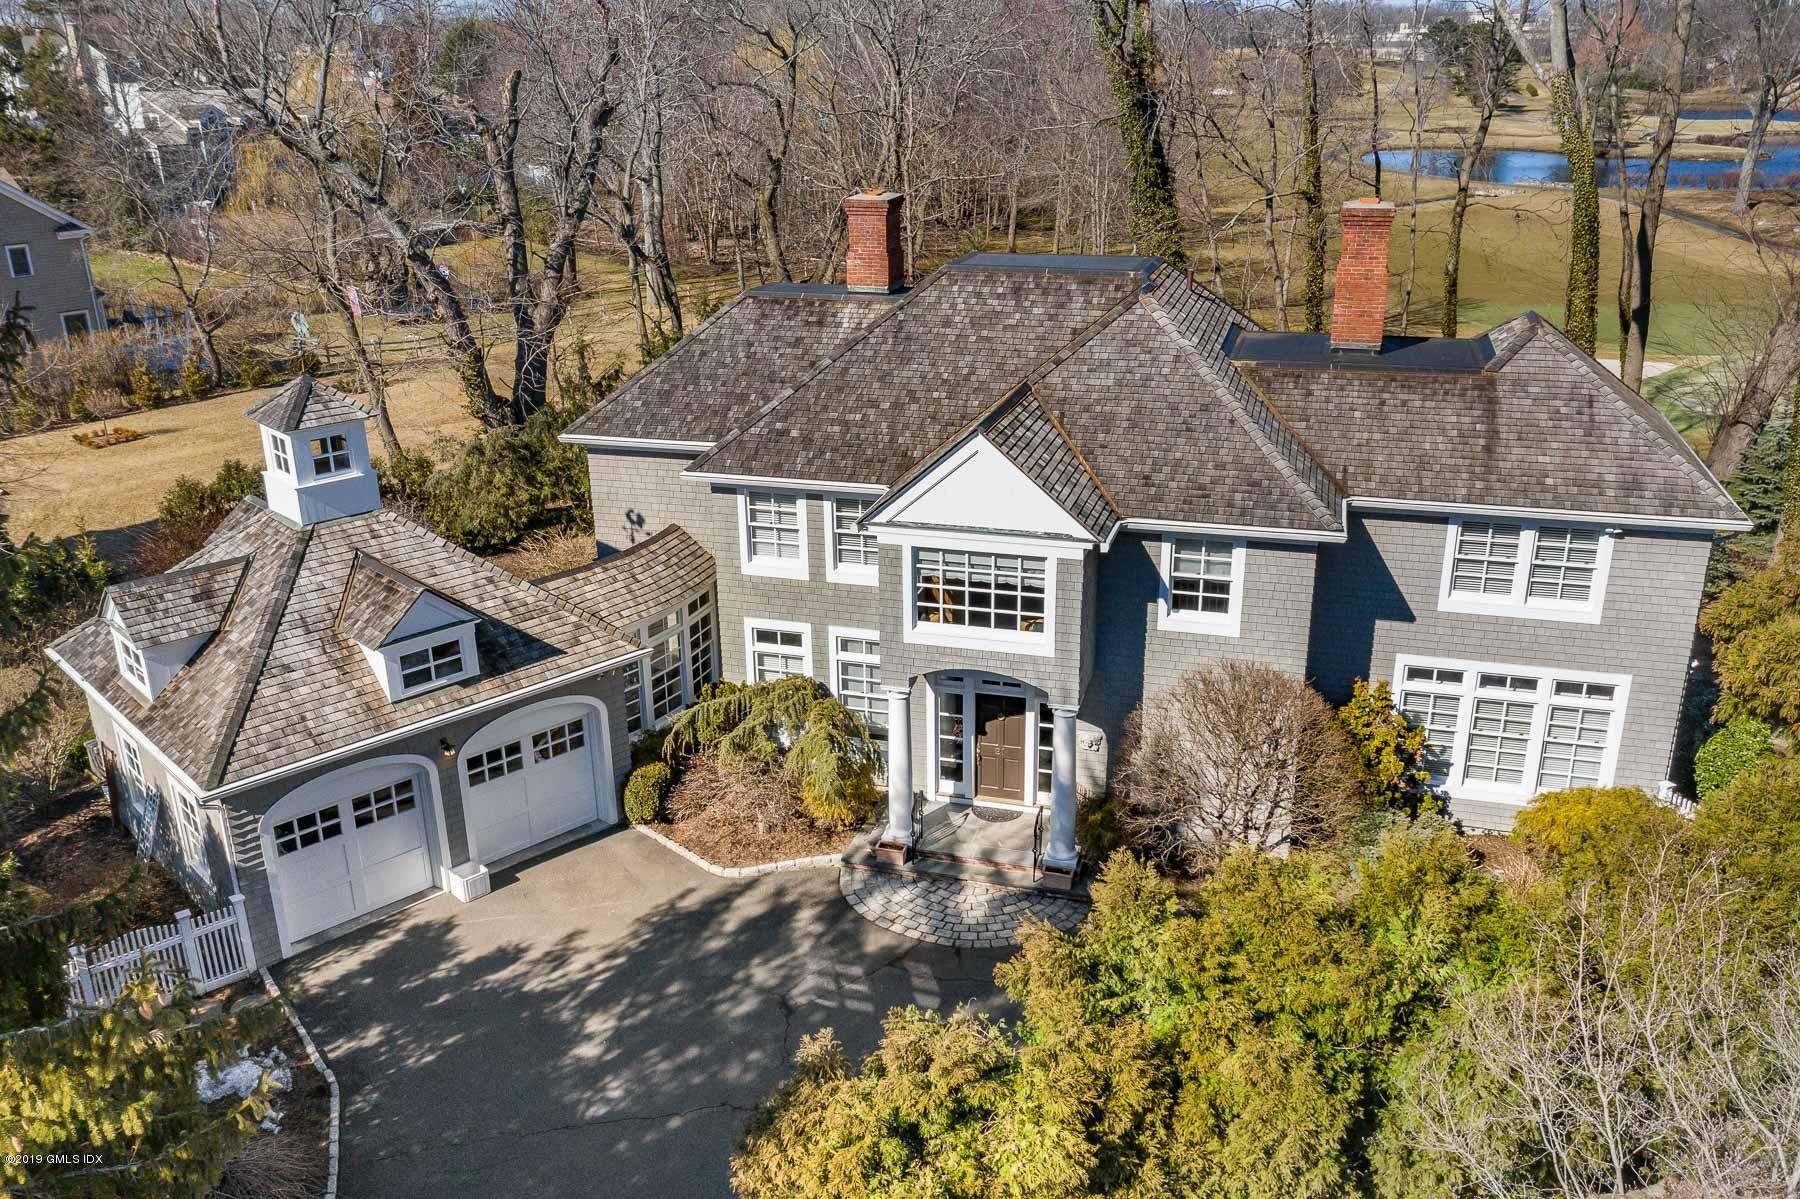 21 Tomac Avenue,Old Greenwich,Connecticut 06870,3 Bedrooms Bedrooms,3 BathroomsBathrooms,Single family,Tomac,106033